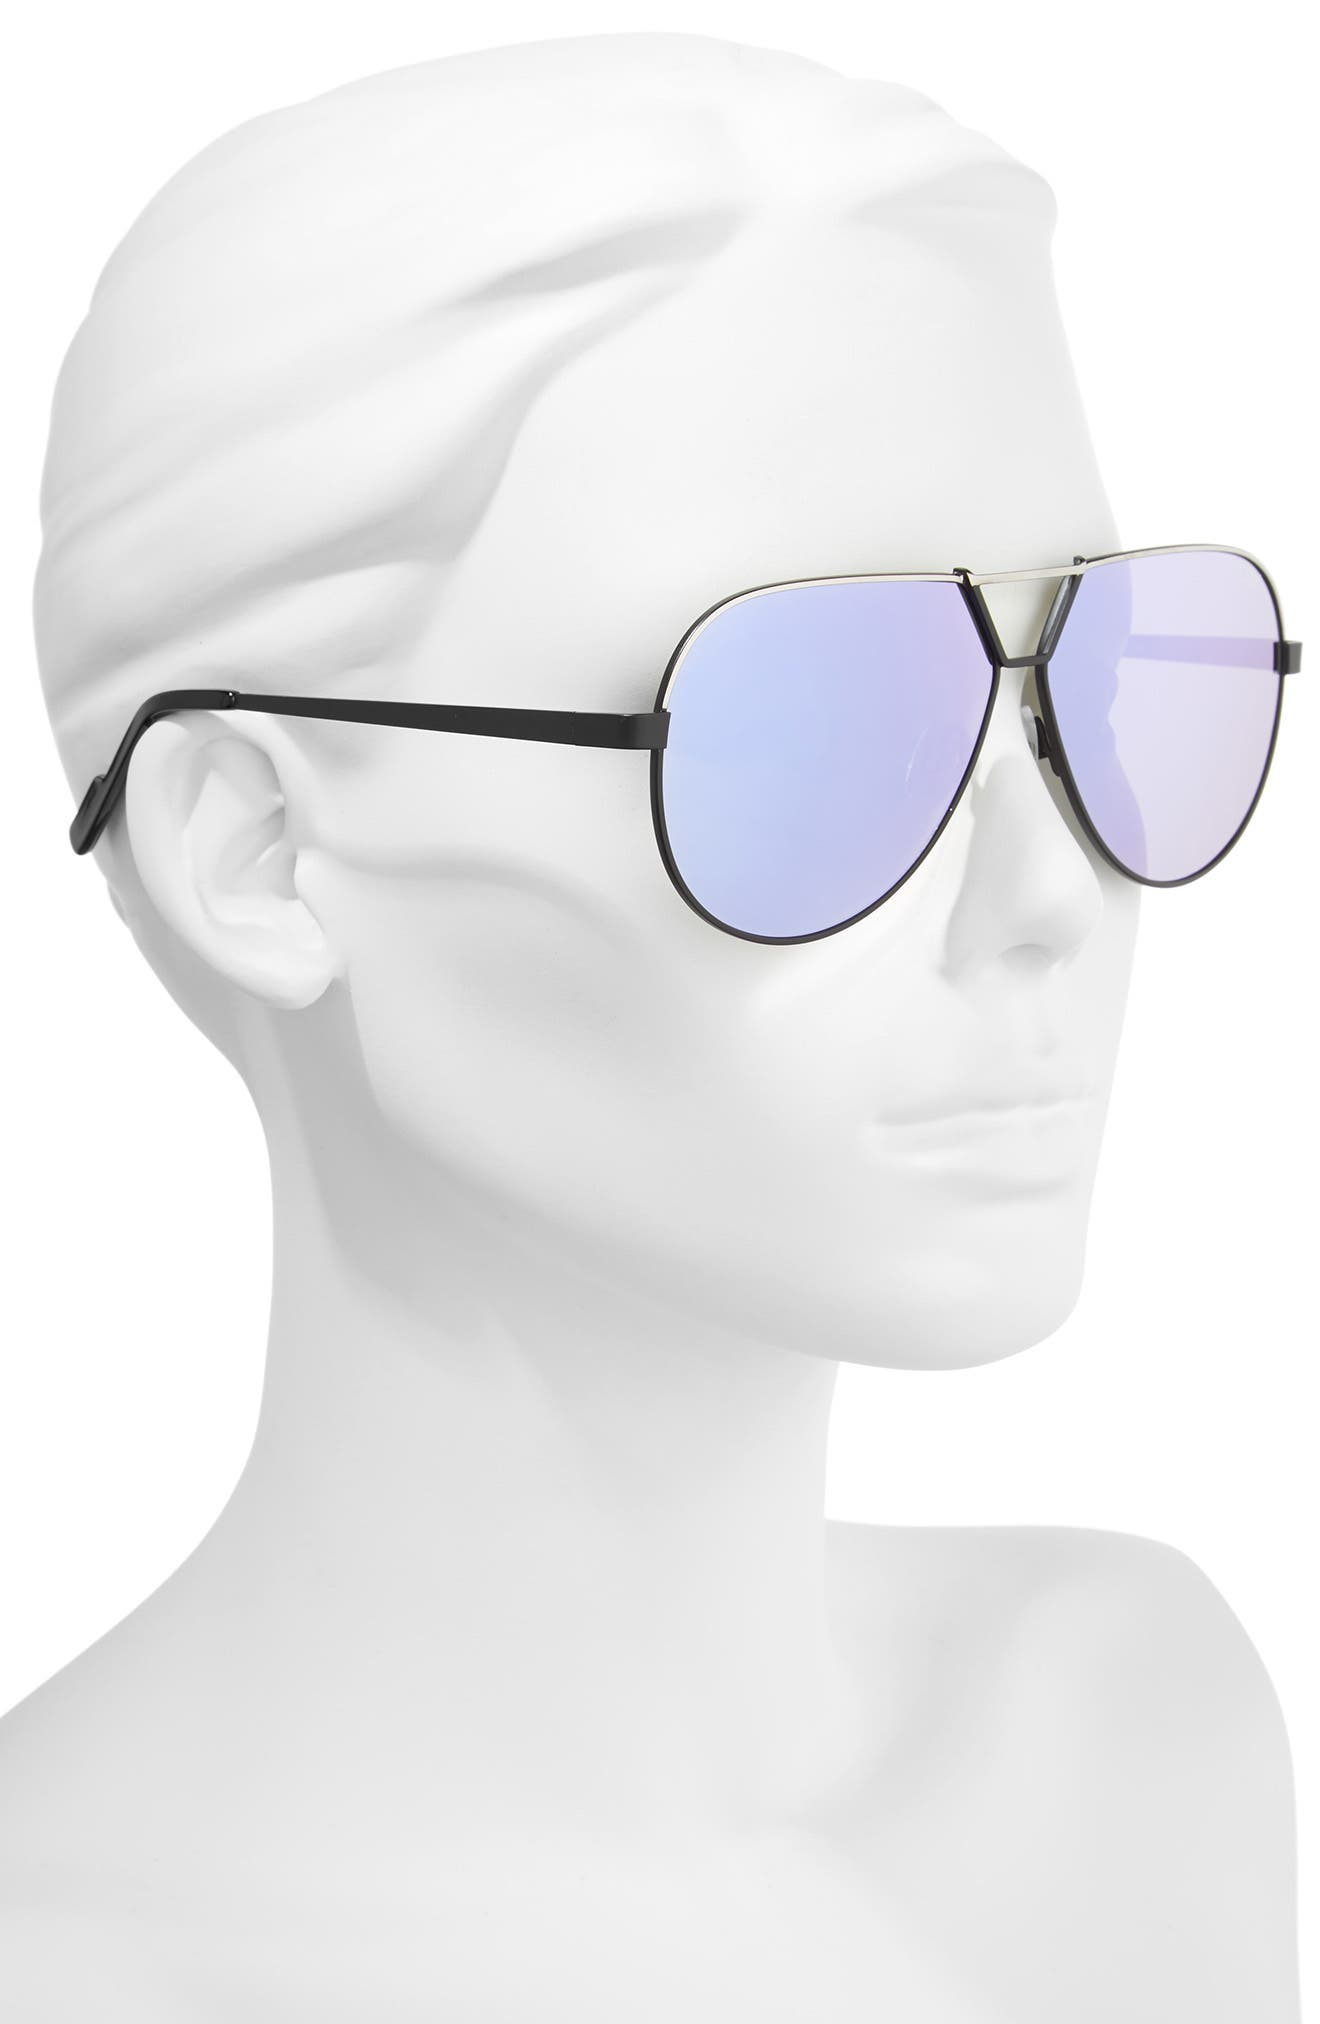 Supernova 63mm Aviator Sunglasses,                             Alternate thumbnail 2, color,                             001